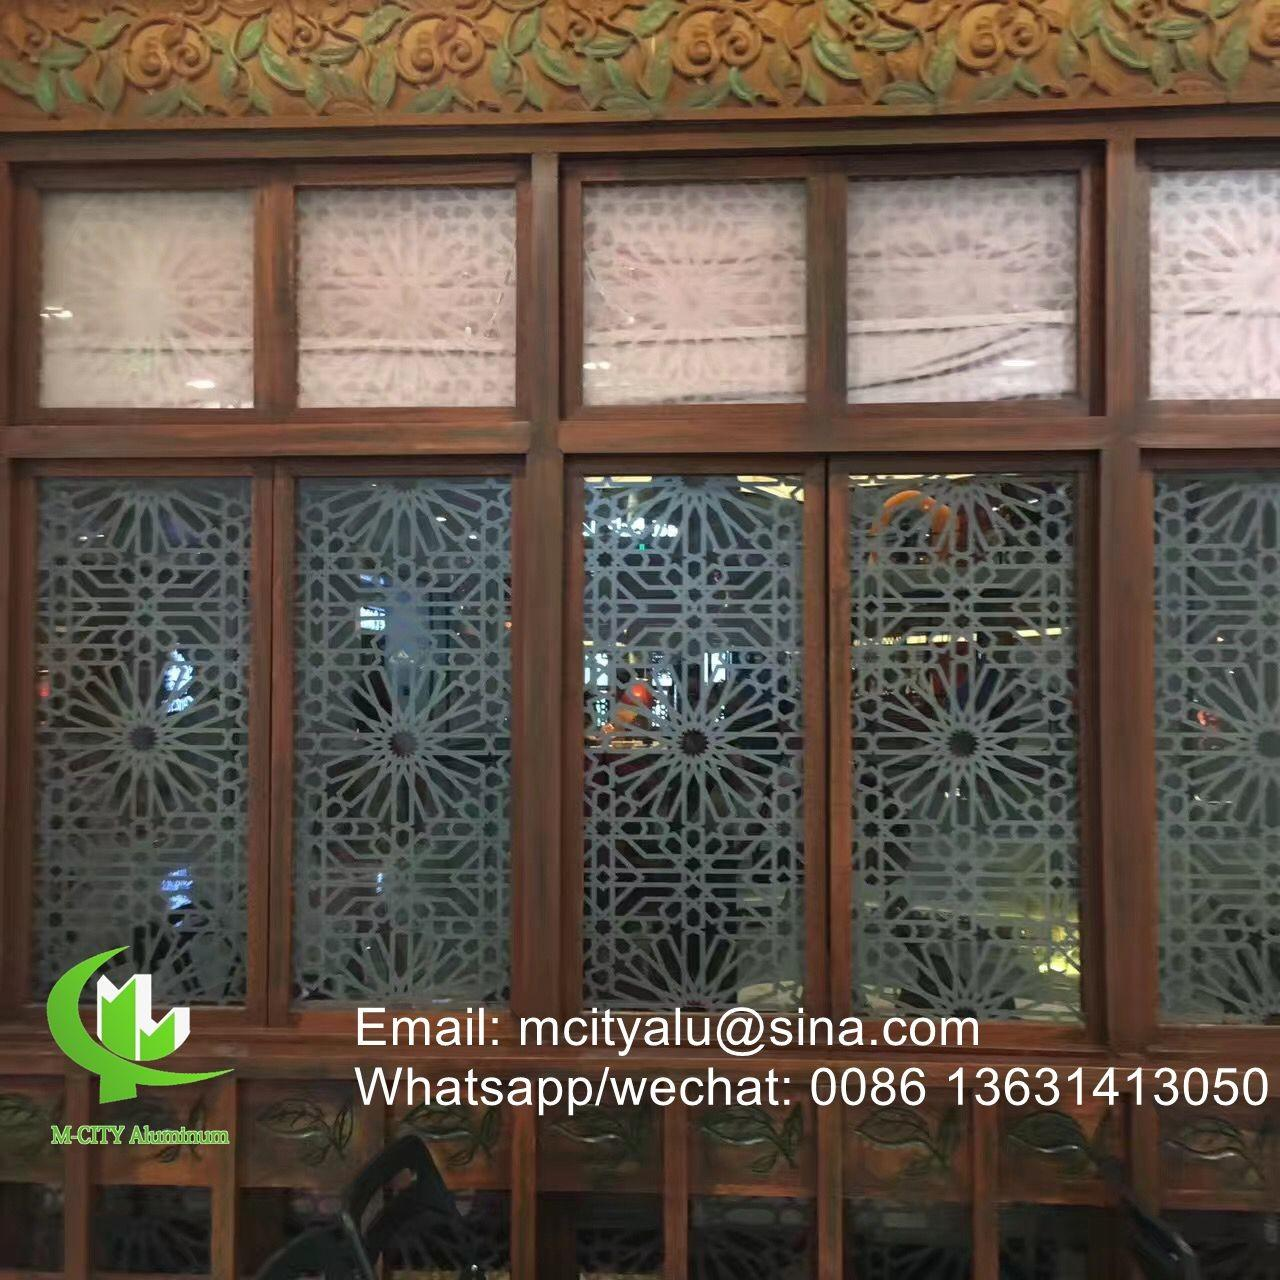 Aluminum perforated sheet for window screen room divider fence with 2mm thickness laser cut screen Manufactures